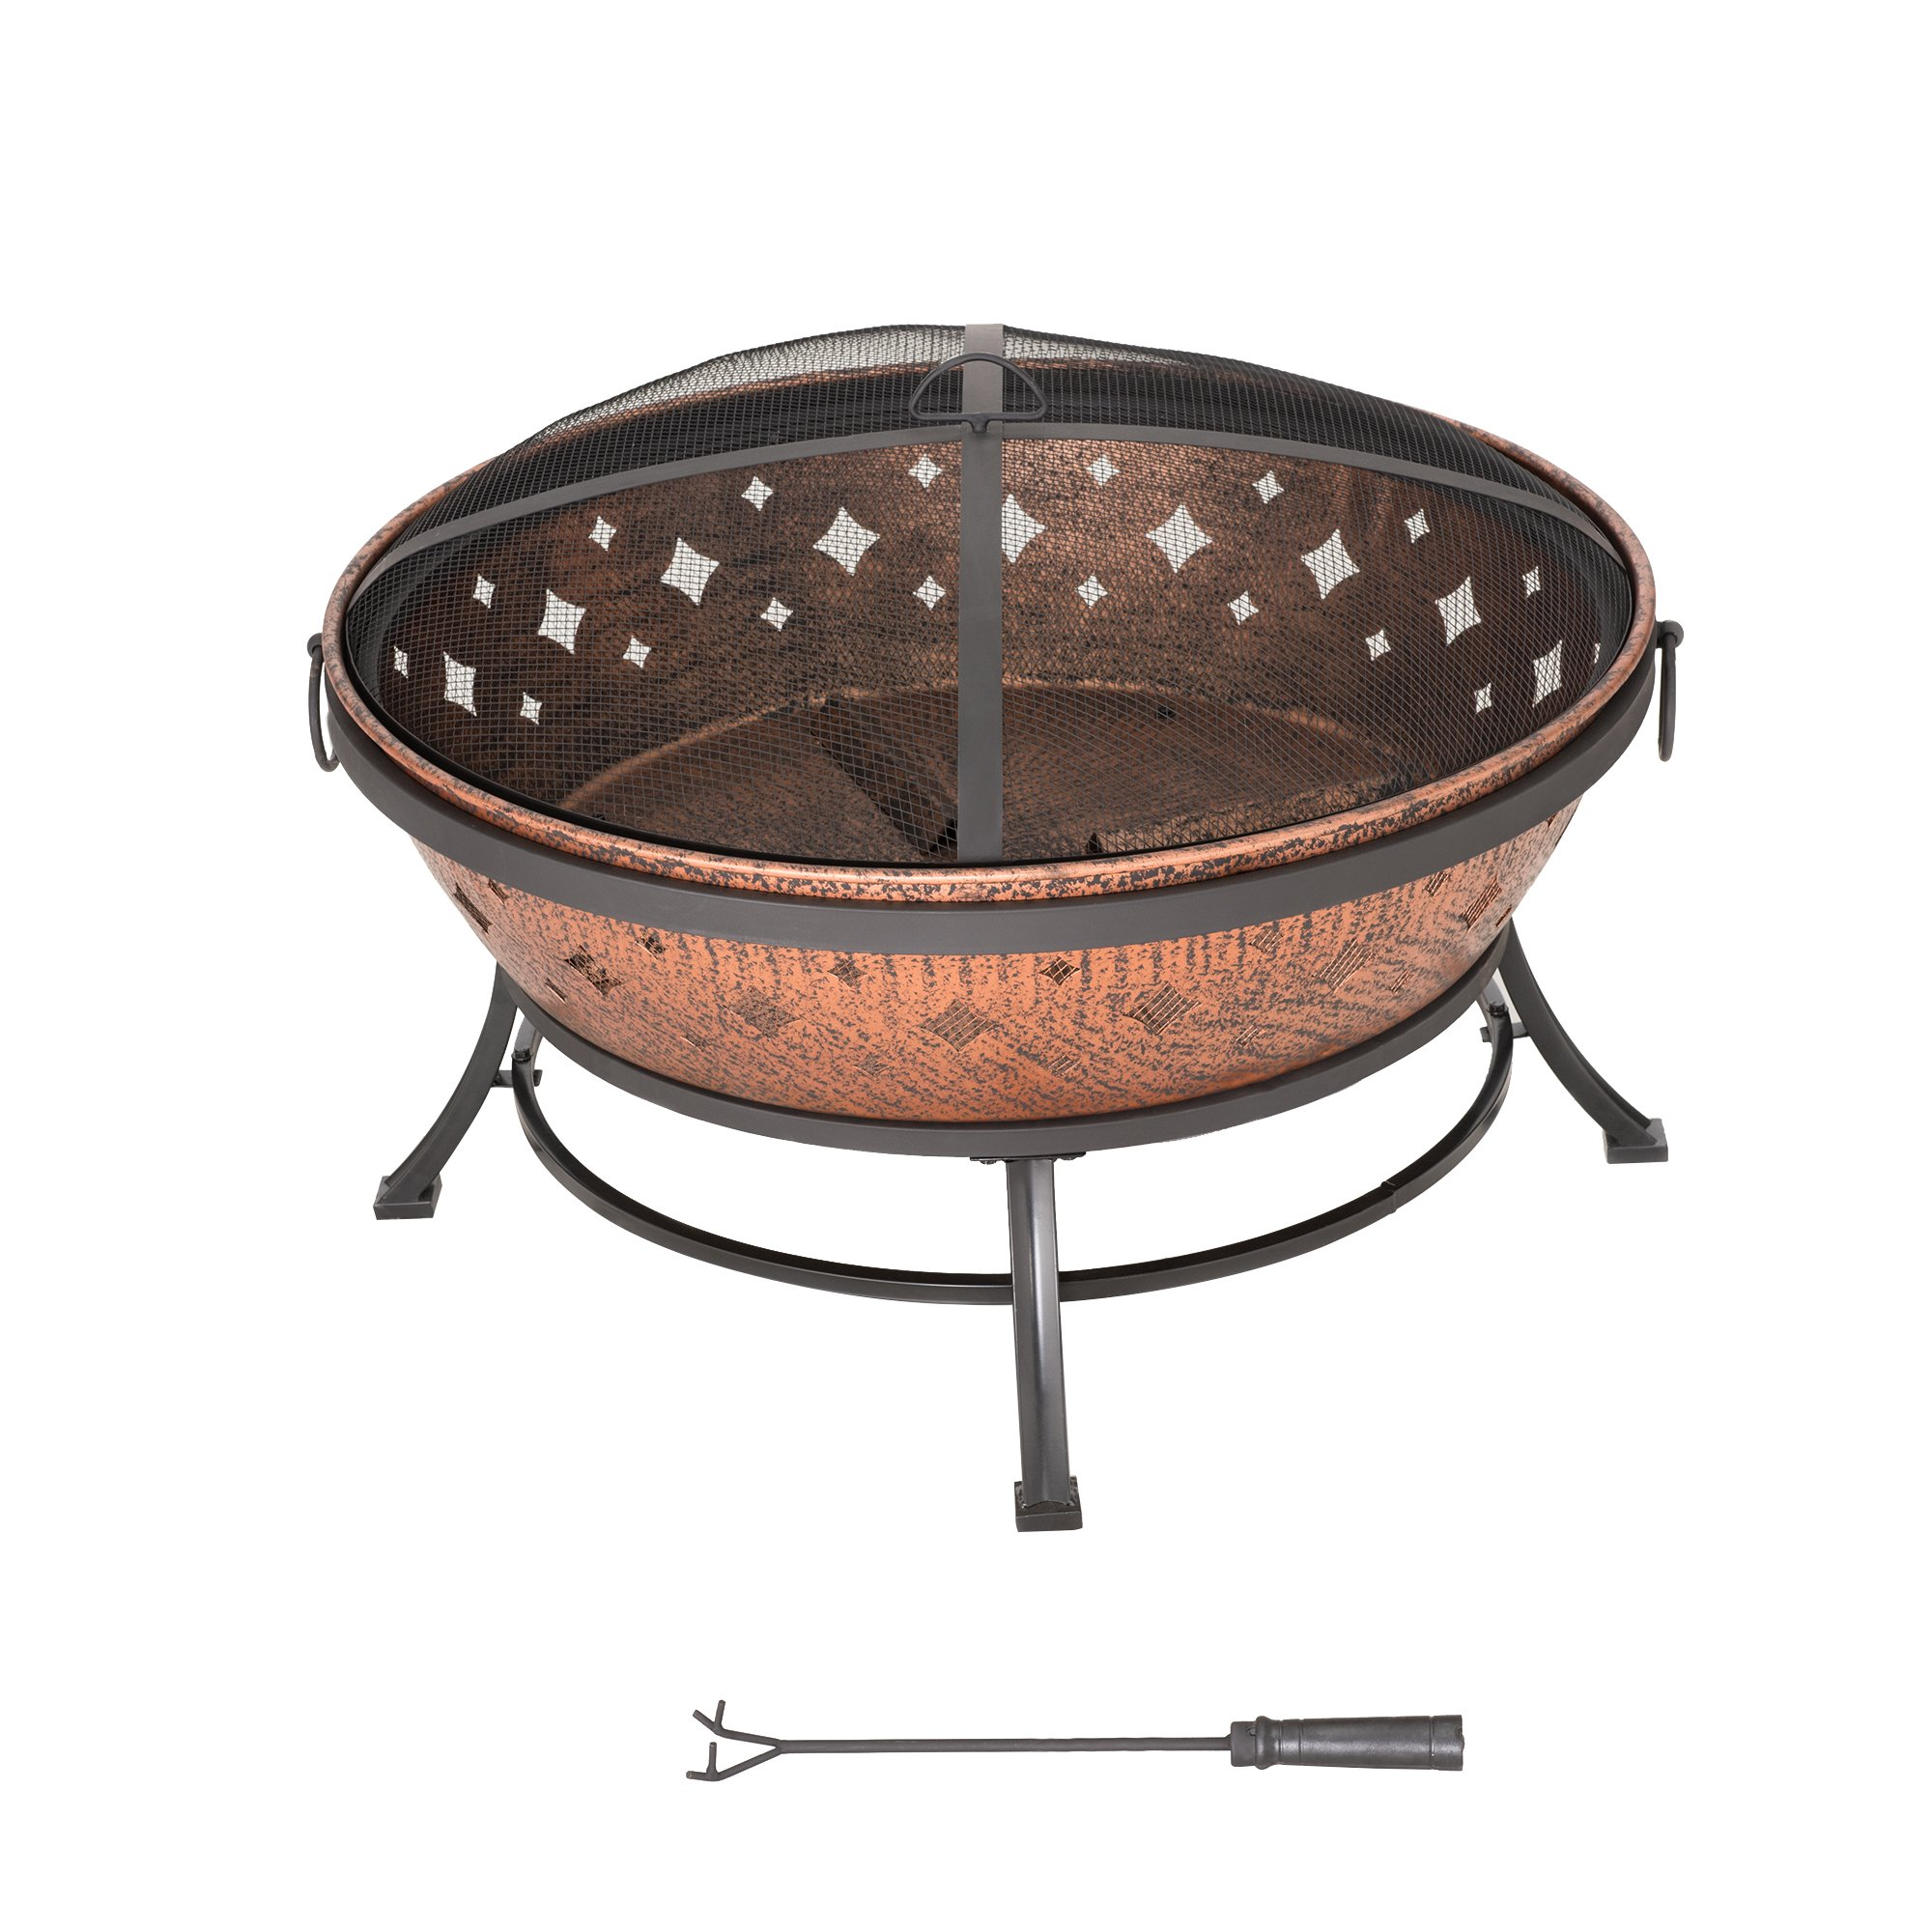 Sunjoy L-FT629PST Squaw Valley Firepit, Cozy Warmth by Sunjoy